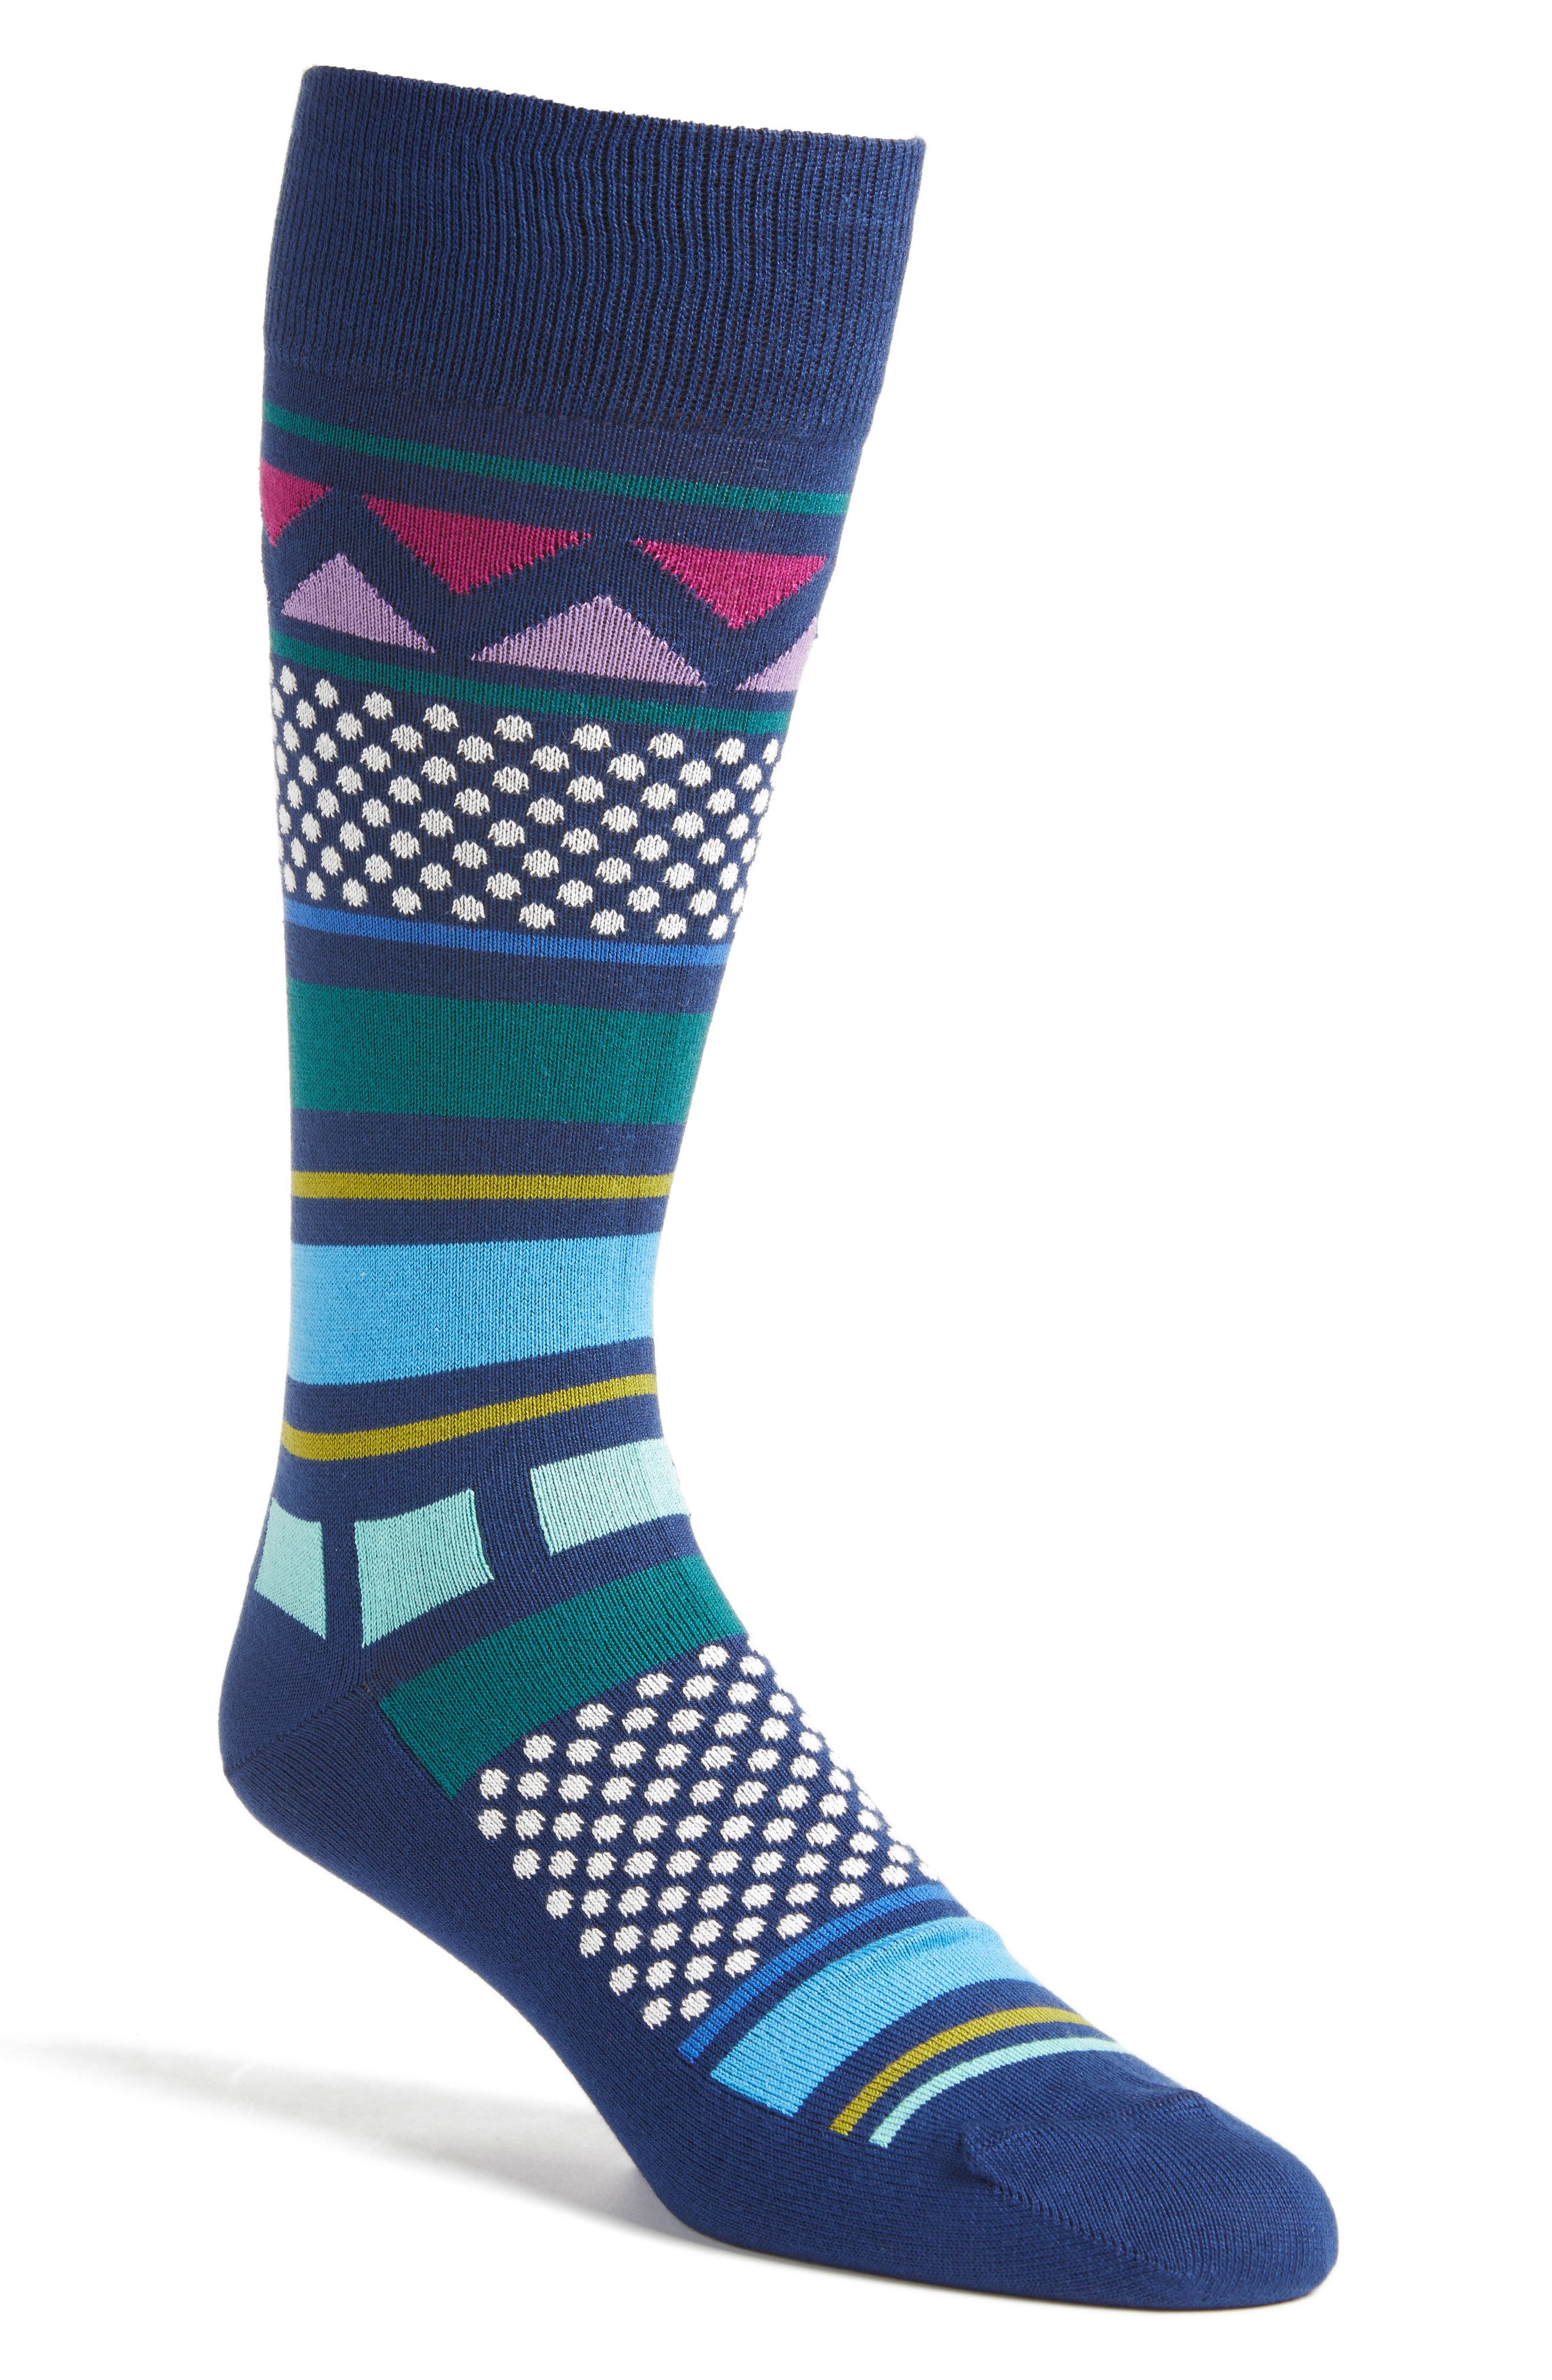 KWA Crew Socks,                             Main thumbnail 1, color,                             415